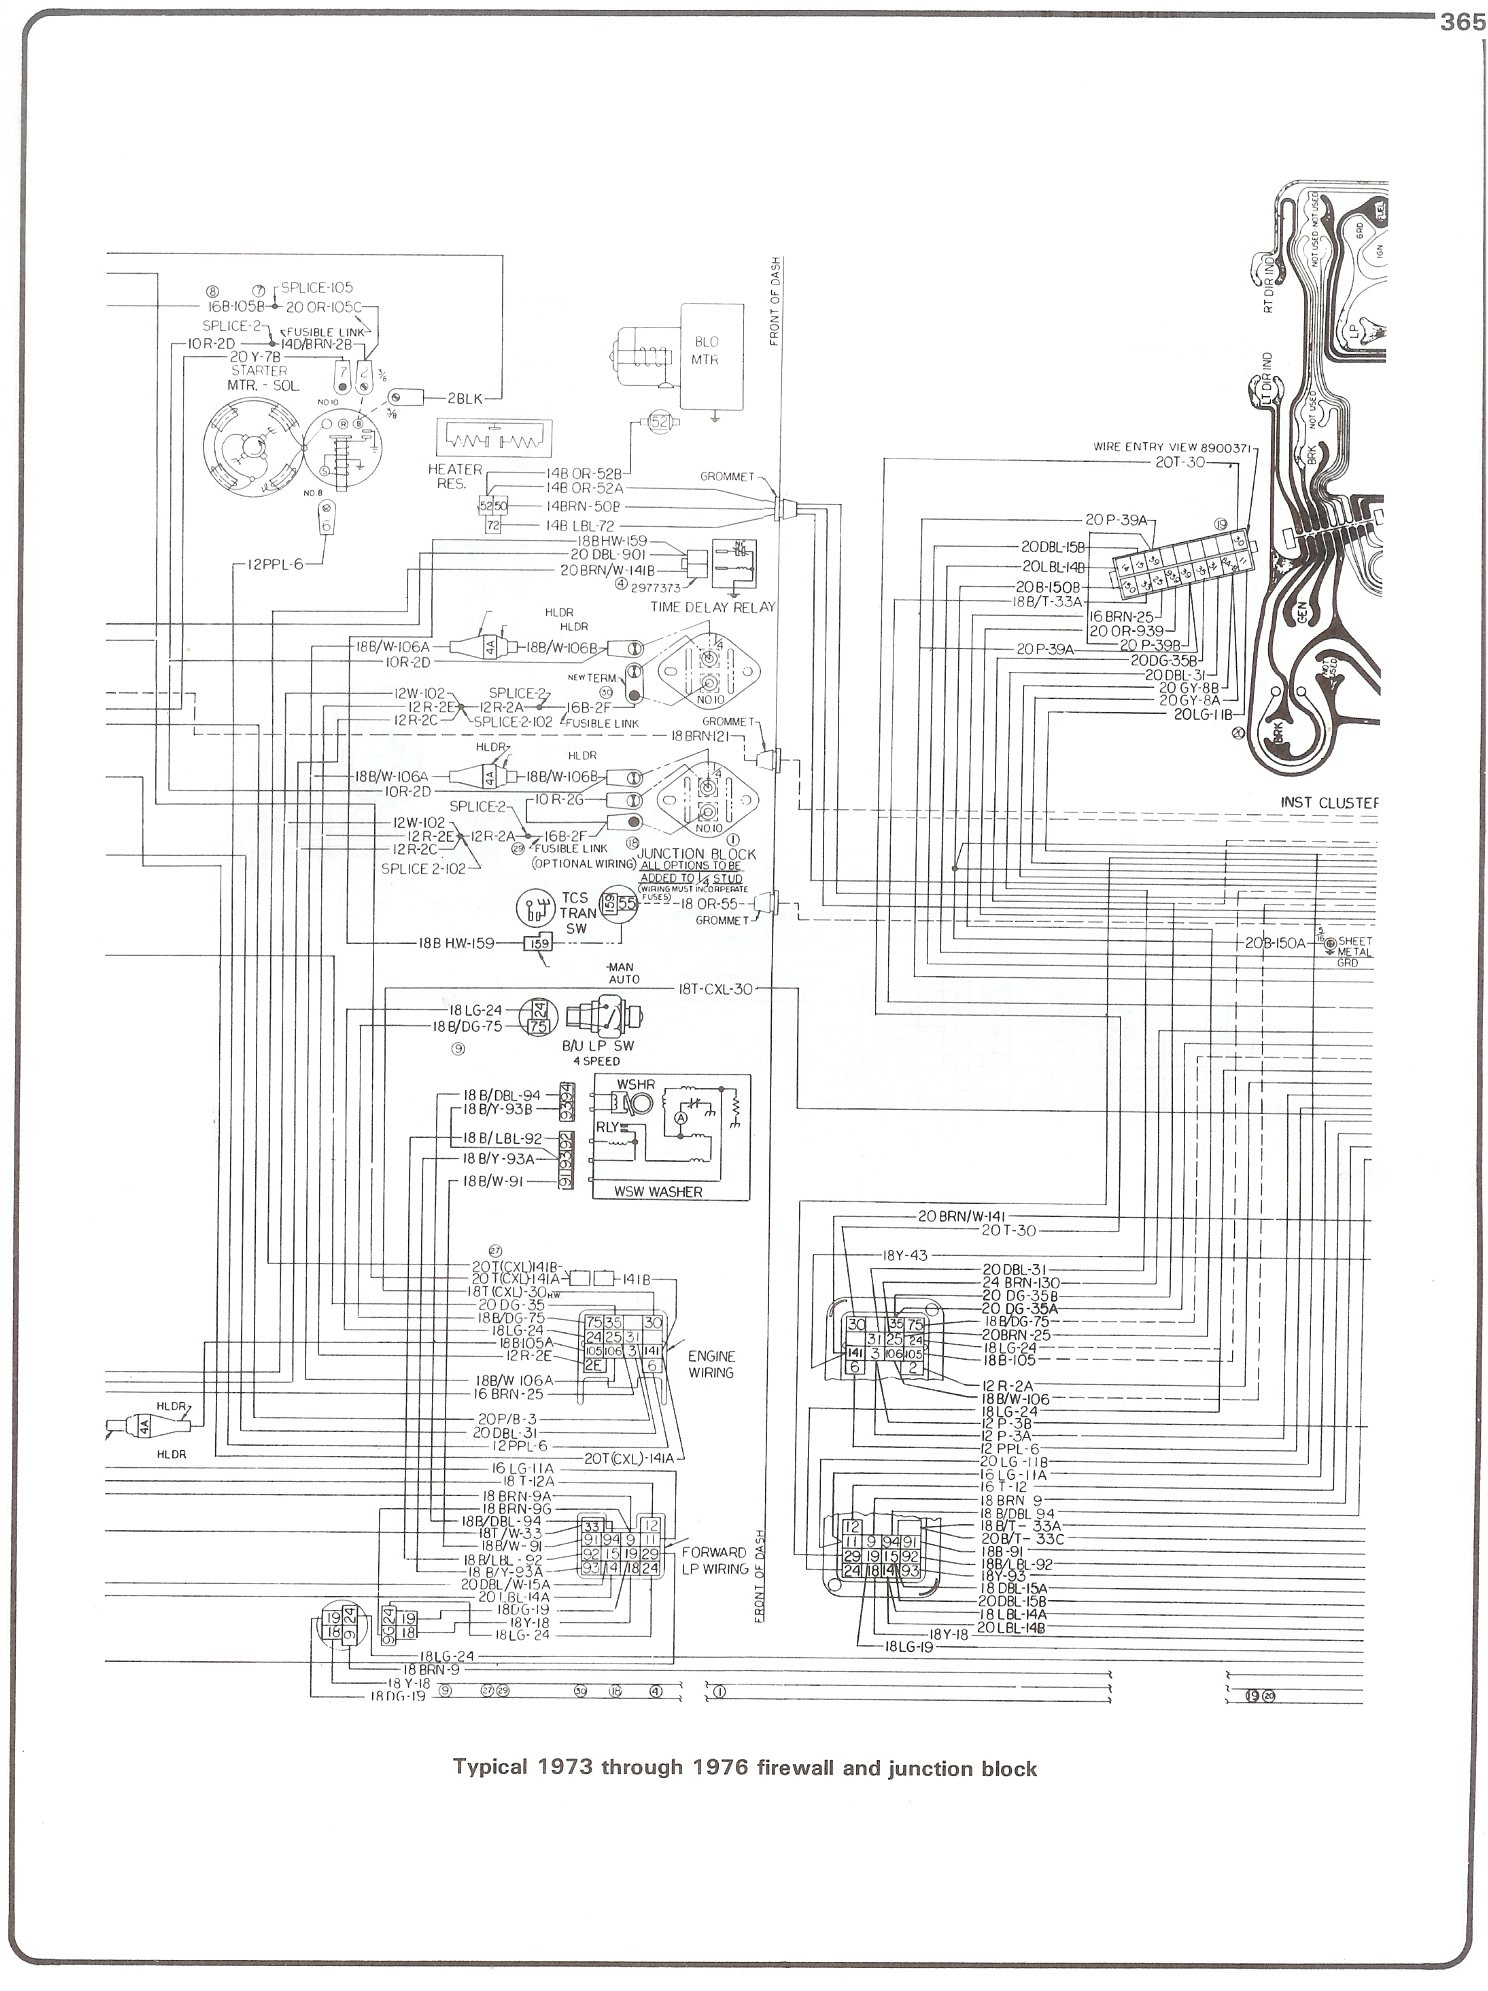 1990 chevy fuse box diagram firewall schematics wiring diagrams u2022 rh seniorlivinguniversity co